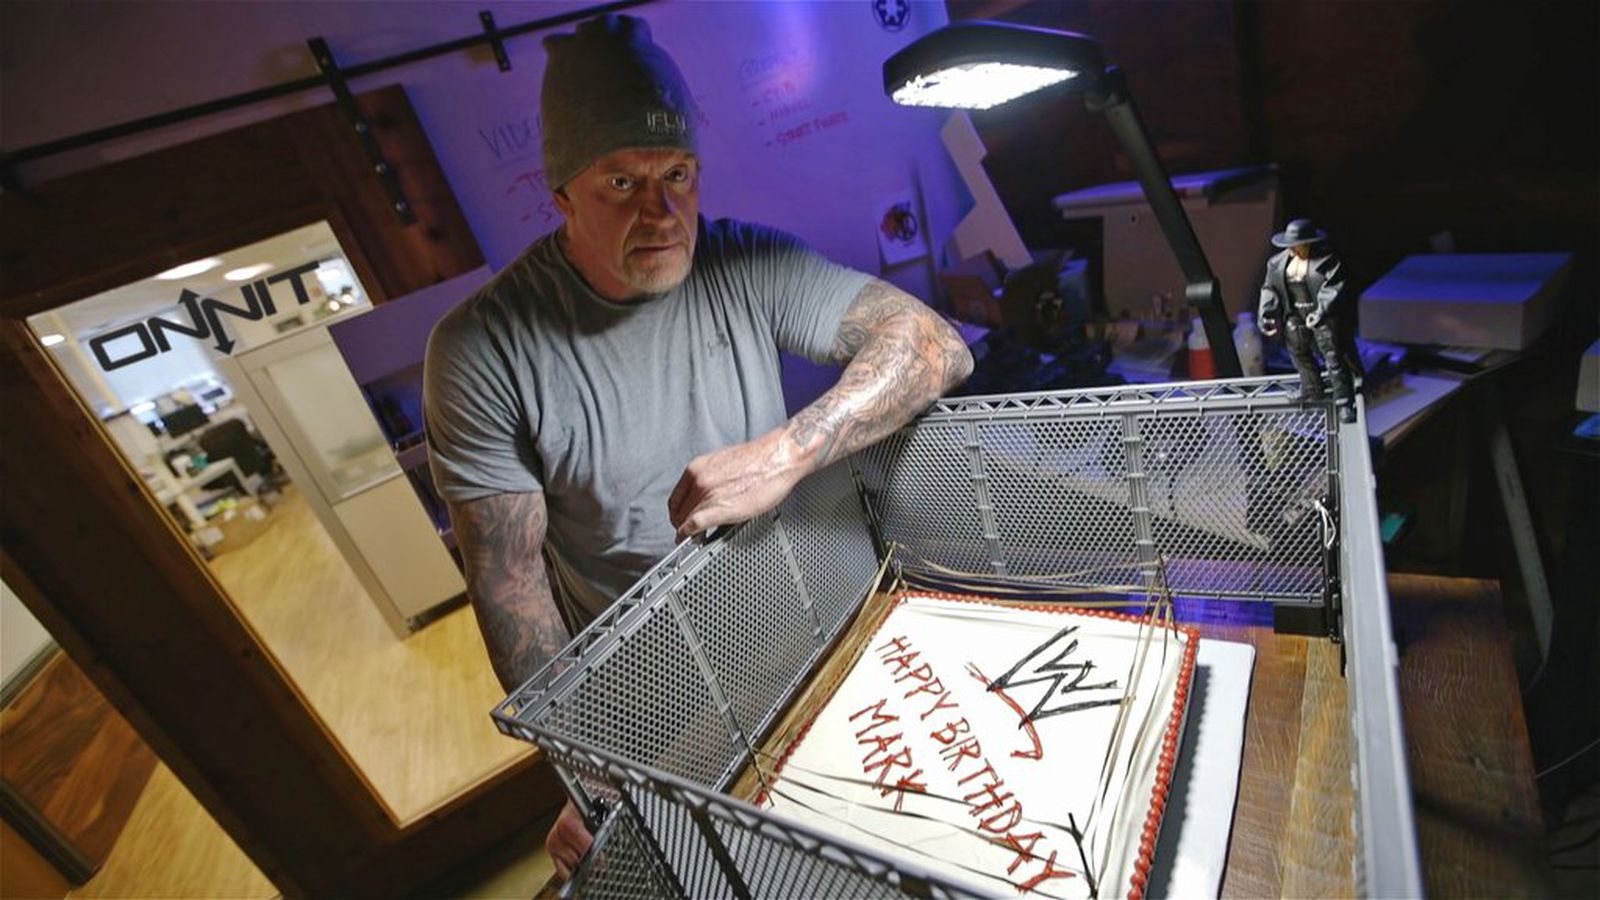 Not Even A Birthday Cake Can Make The Undertaker Smile